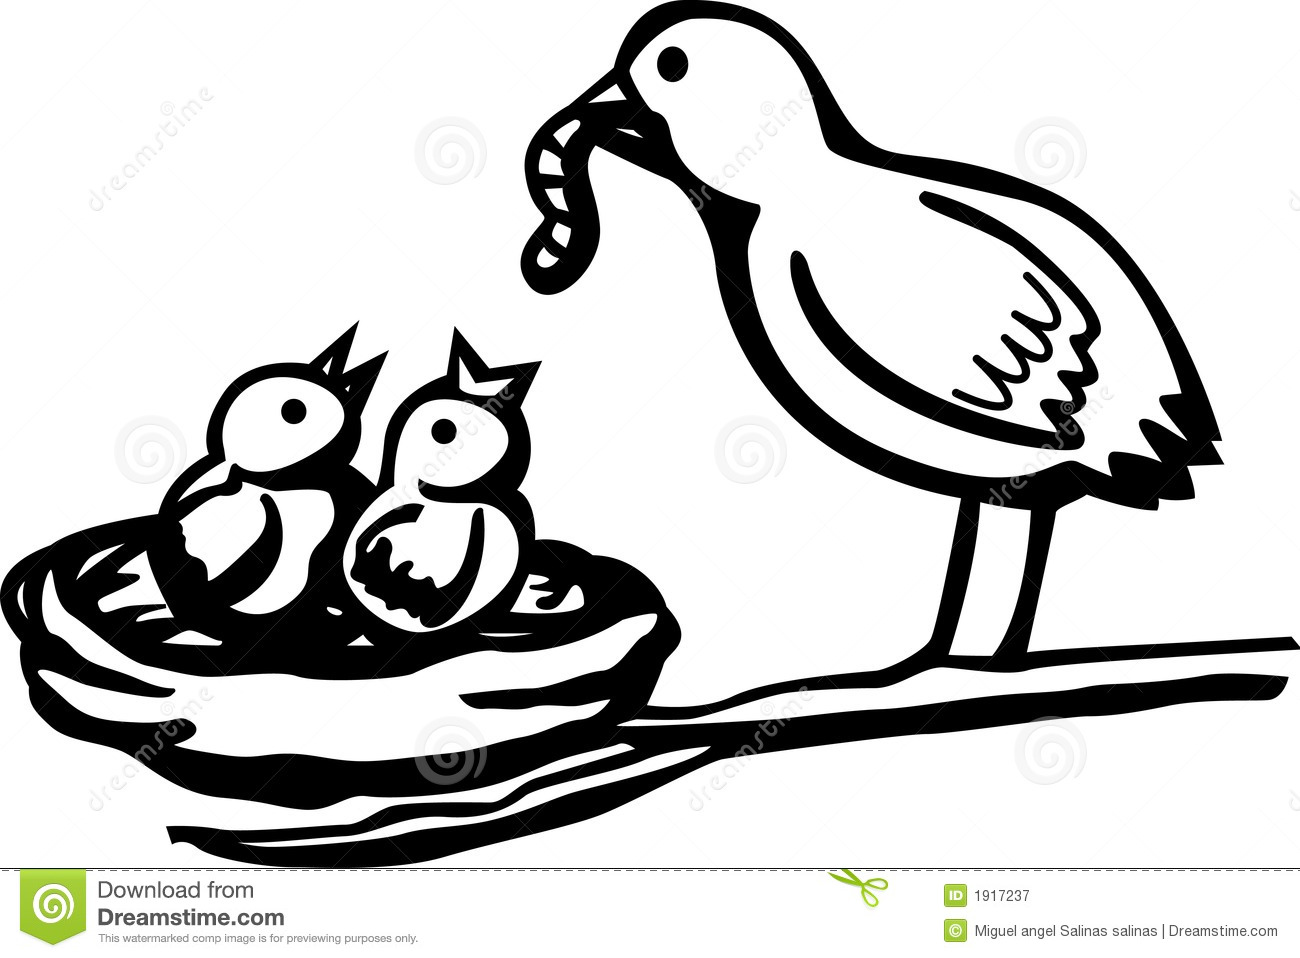 Mom and baby bird clipart black and white clip art free download Birds Clipart Black And White | Free download best Birds Clipart ... clip art free download